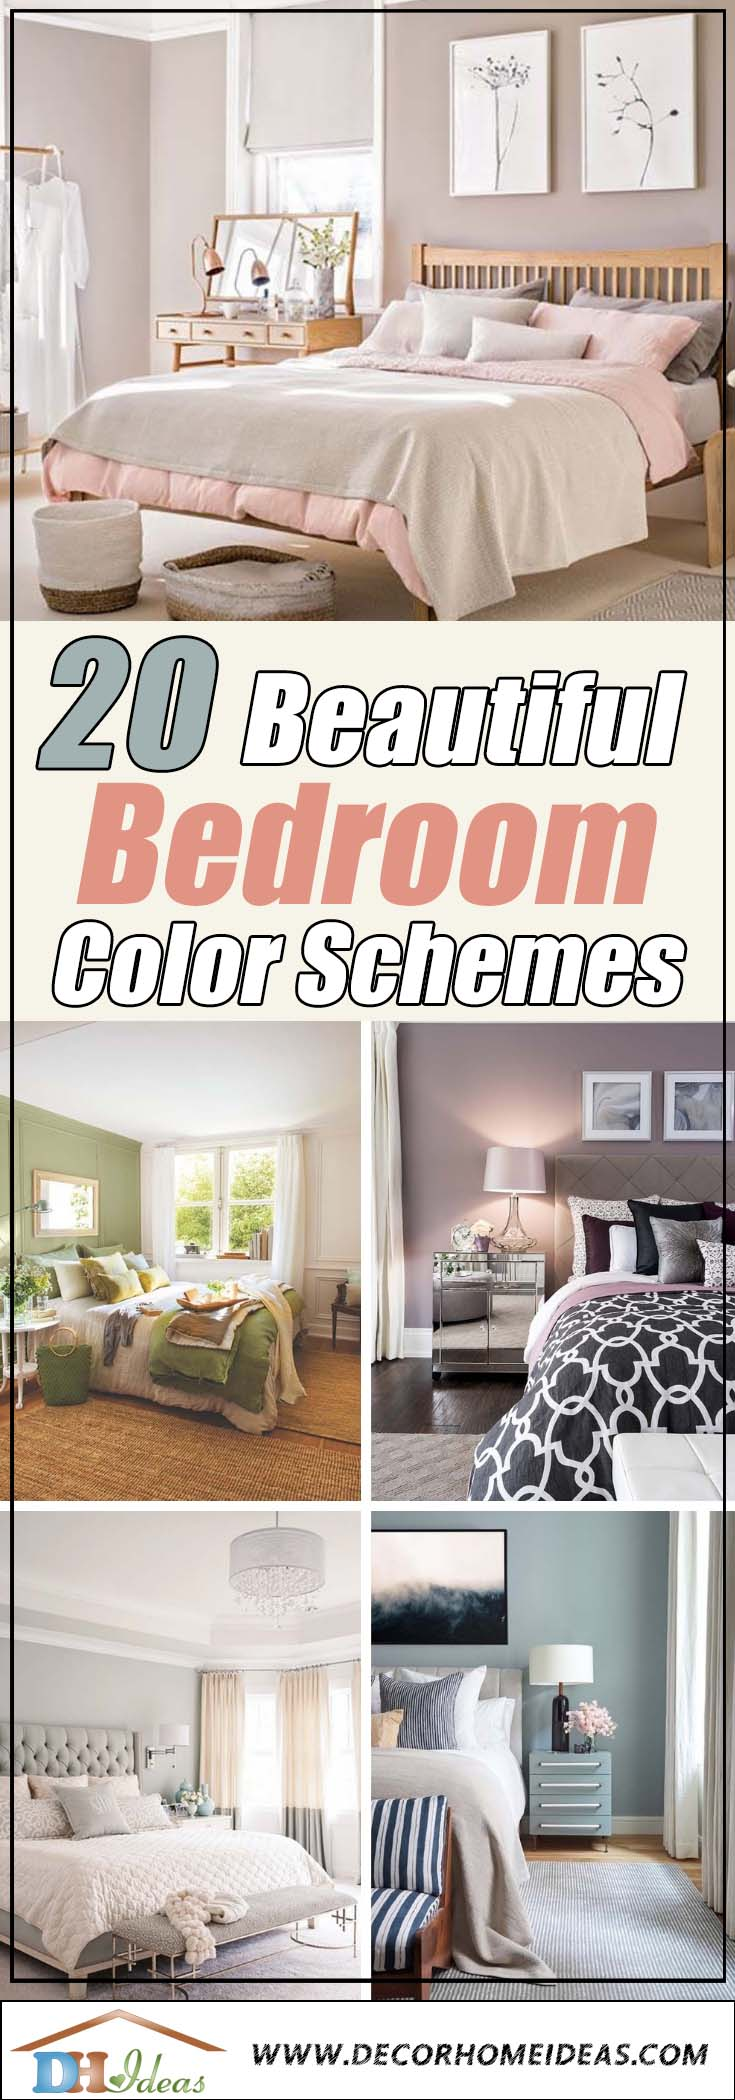 Color Schemes For Rooms 20 Beautiful Bedroom Color Schemes Color Chart Included